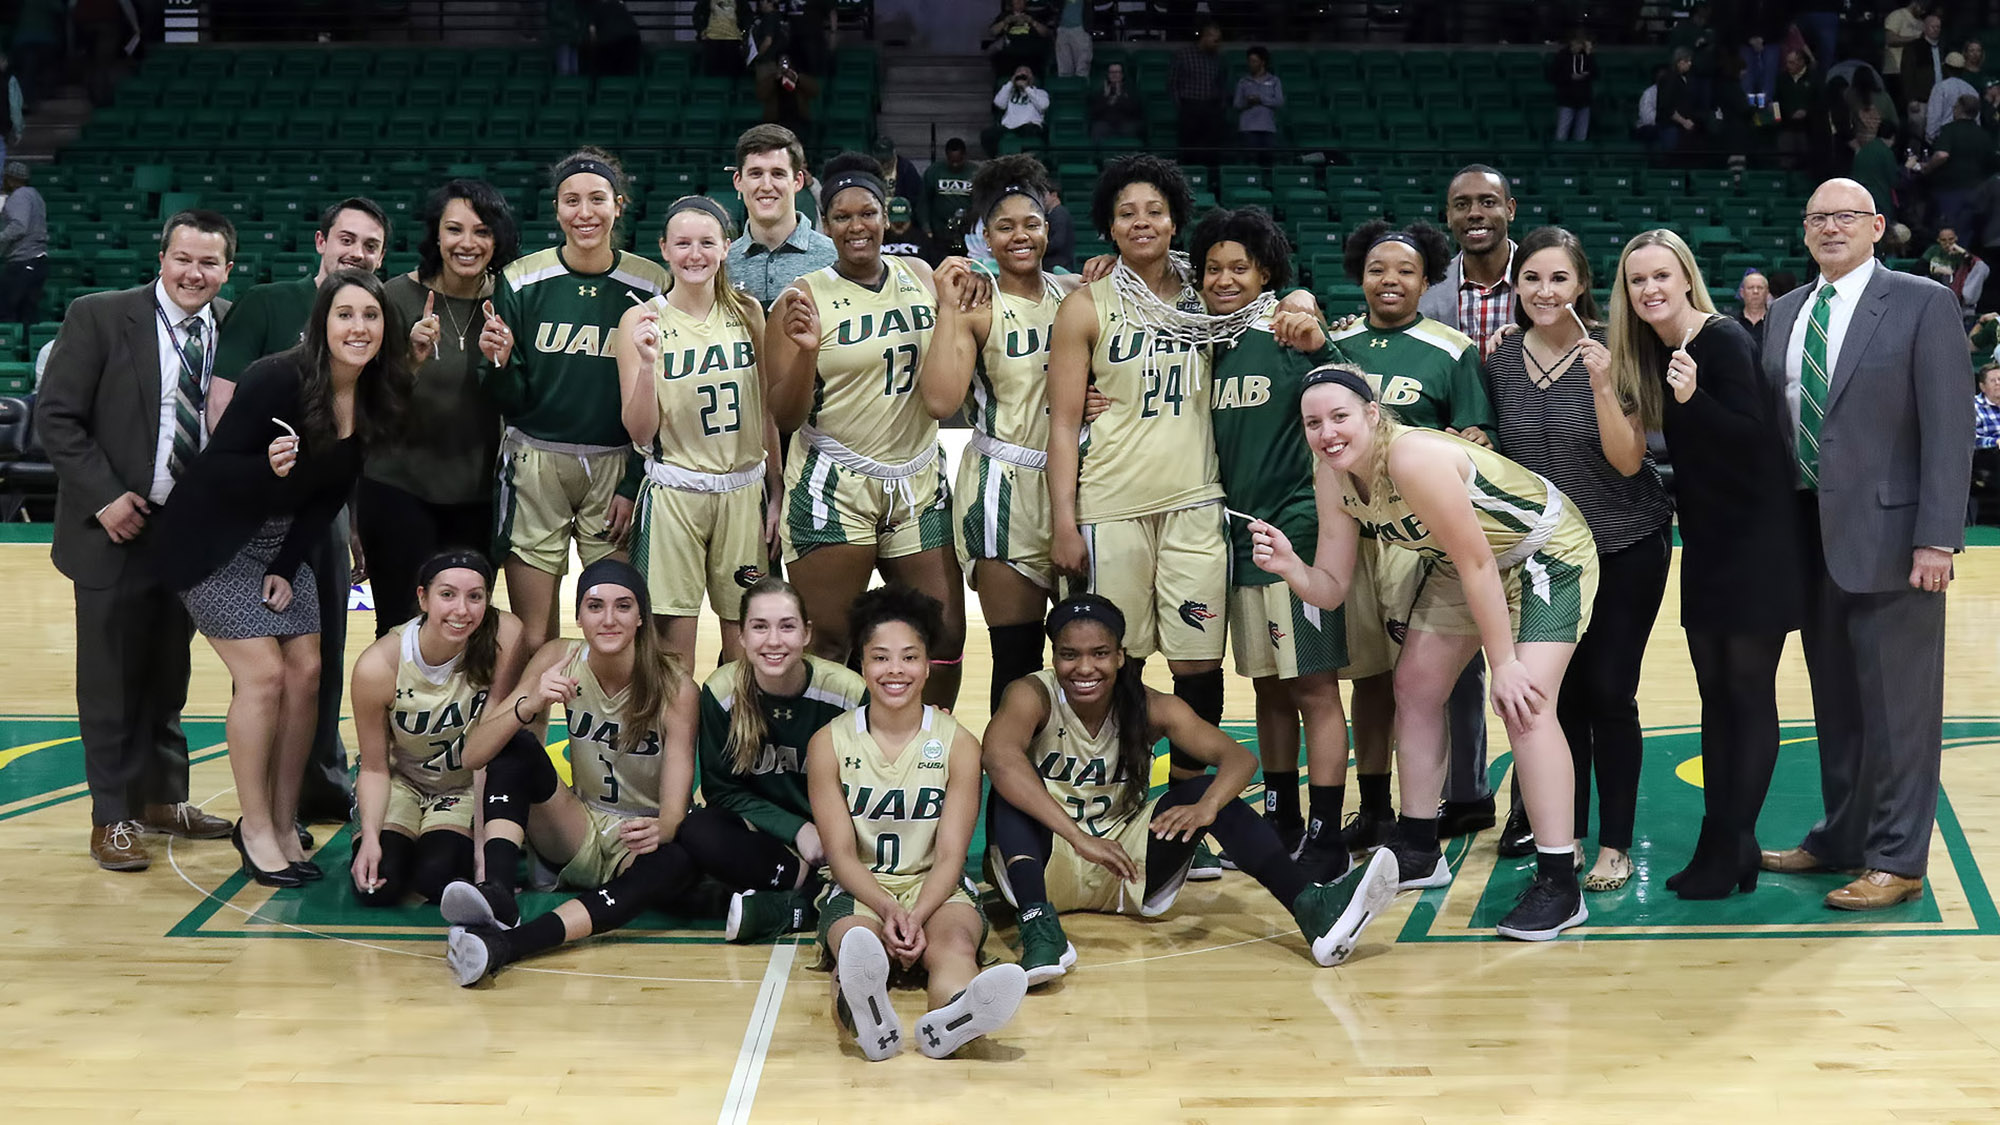 info for 9c203 ee307 2017-18 Blazers Set Standard for UAB Women's Basketball ...